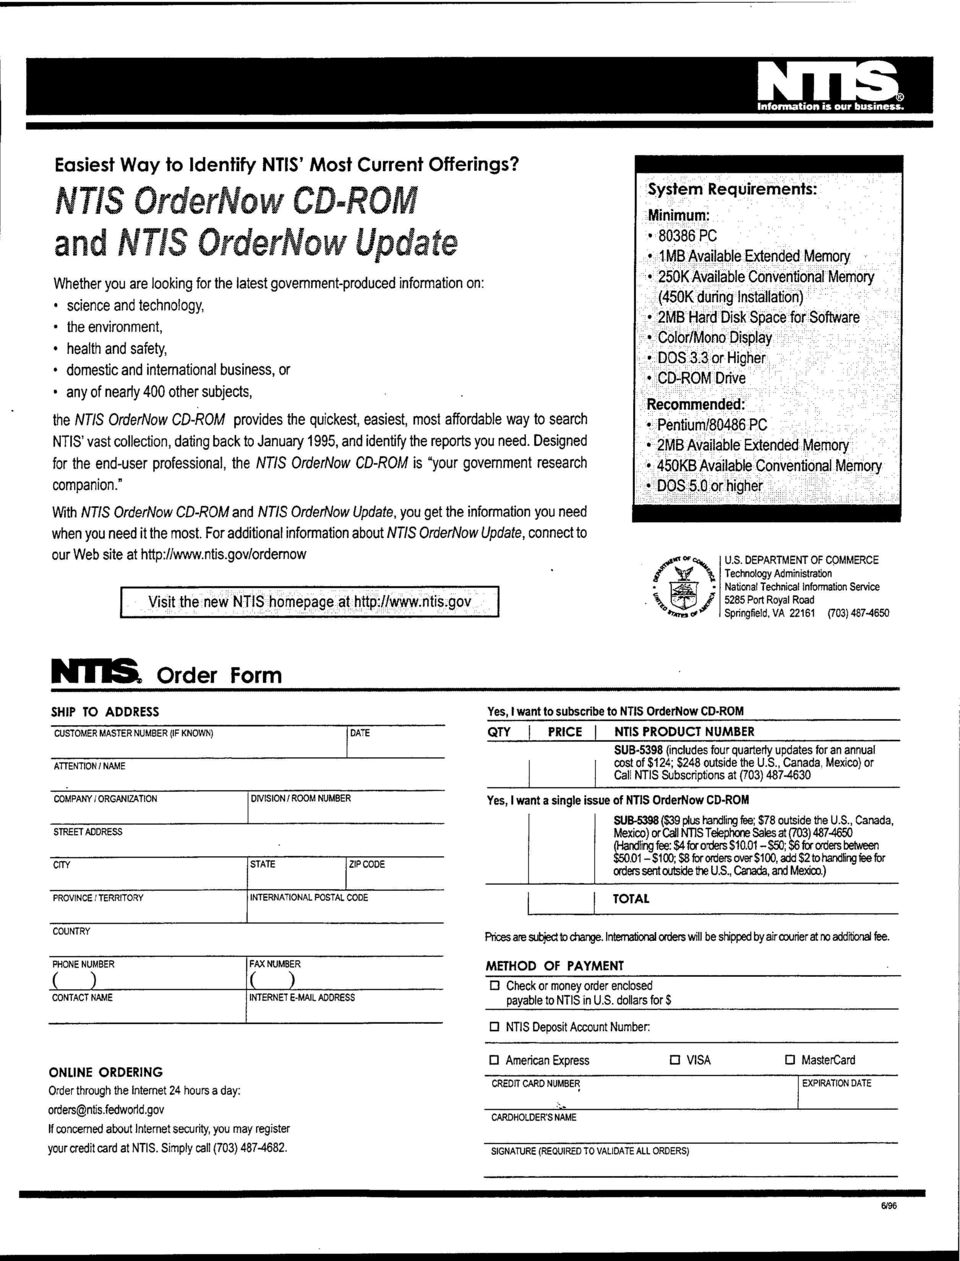 international business, or any of nearly 400 other subjects, the NTIS OrderNow CD-ROM provides the quickest, easiest, most affordable way to search NTIS' vast collection, dating back to January 1995,